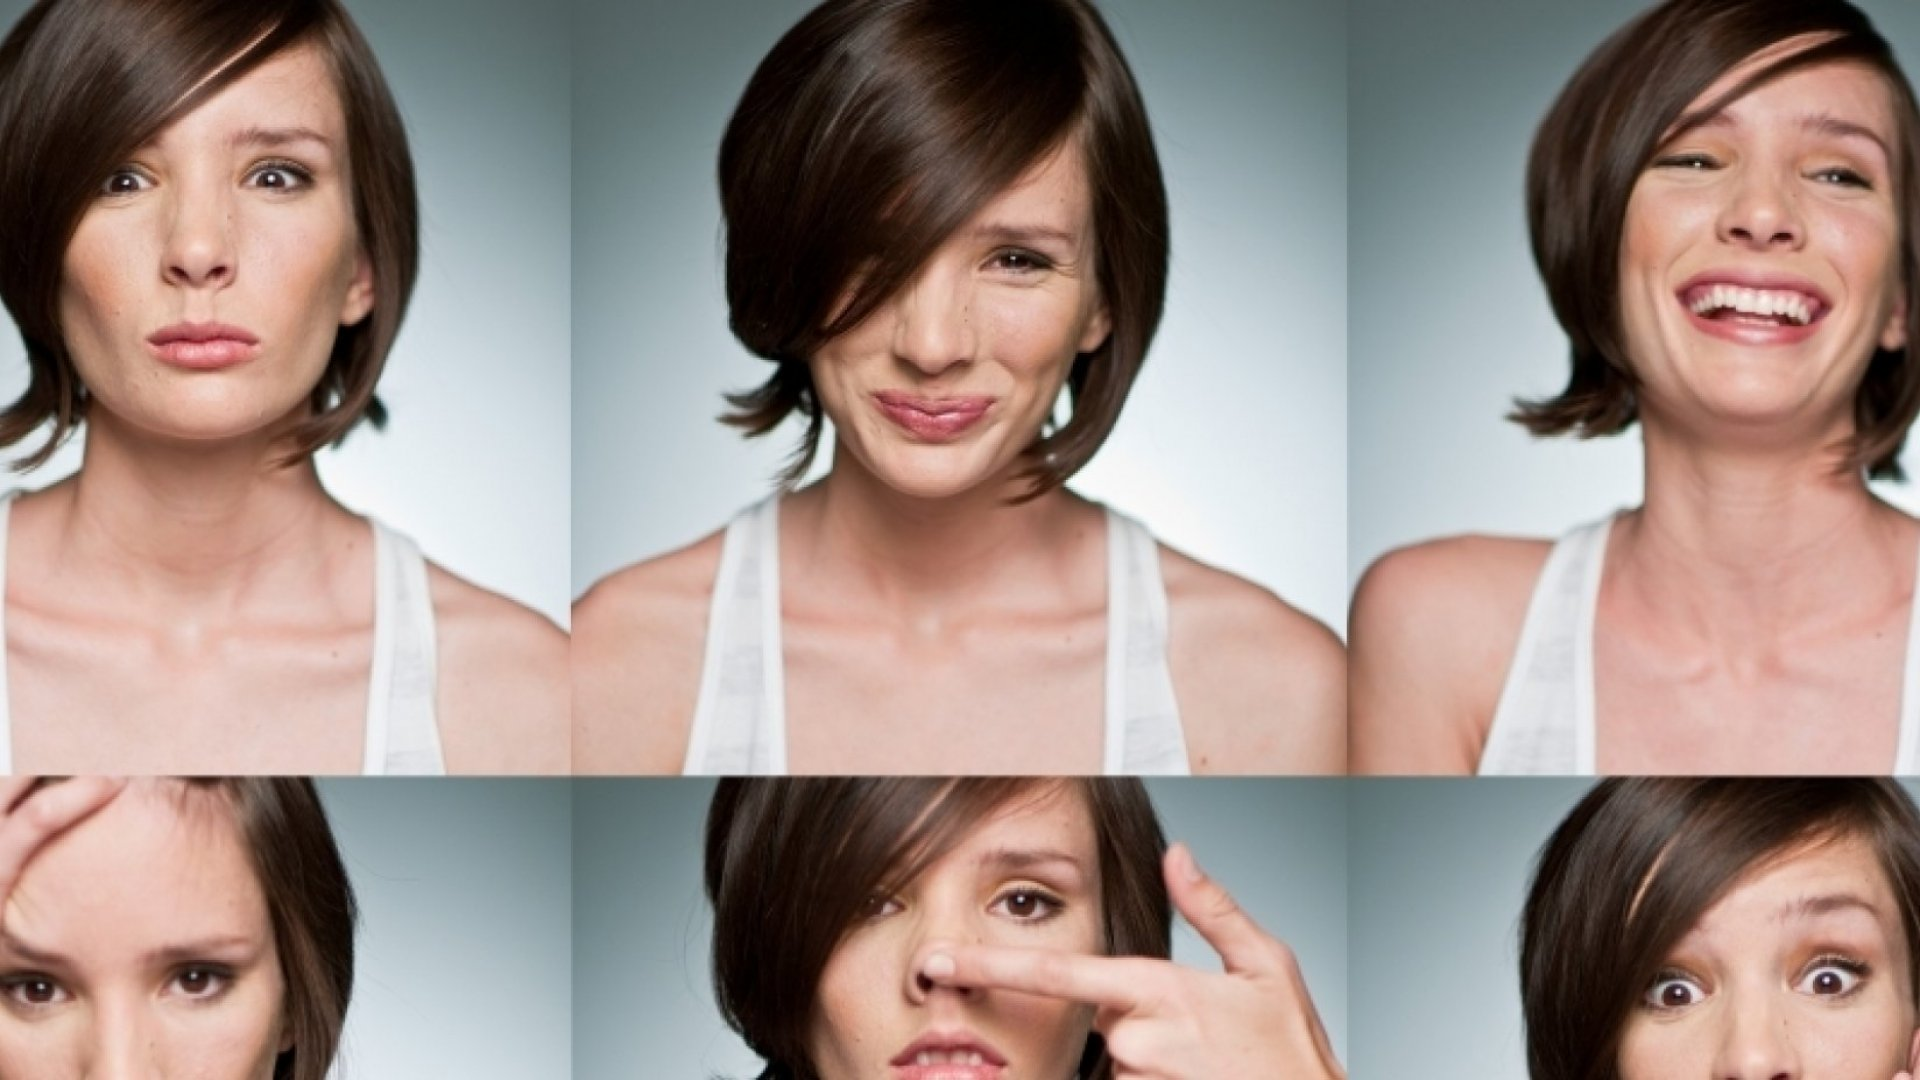 6 Facial Signals That Boost Your Success With Others